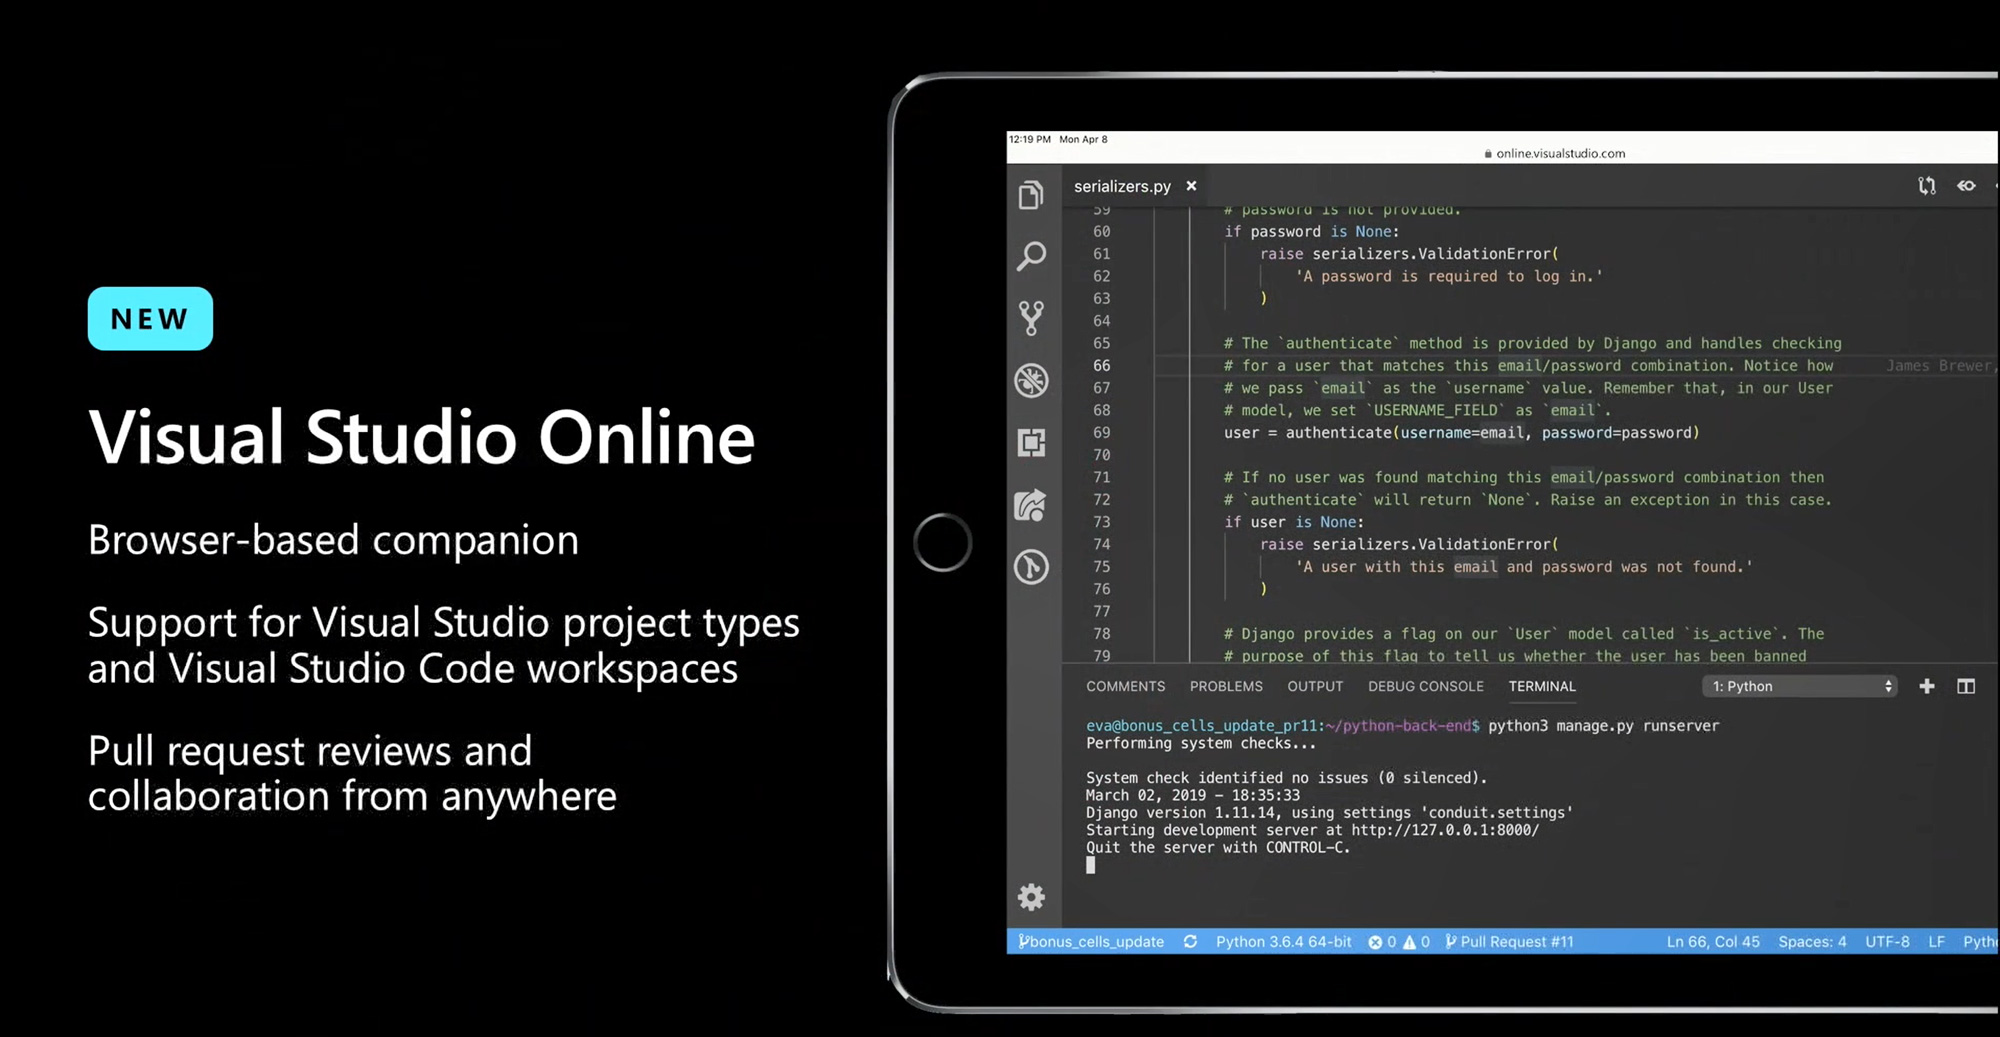 Visual Studio Online - Browser-based companion